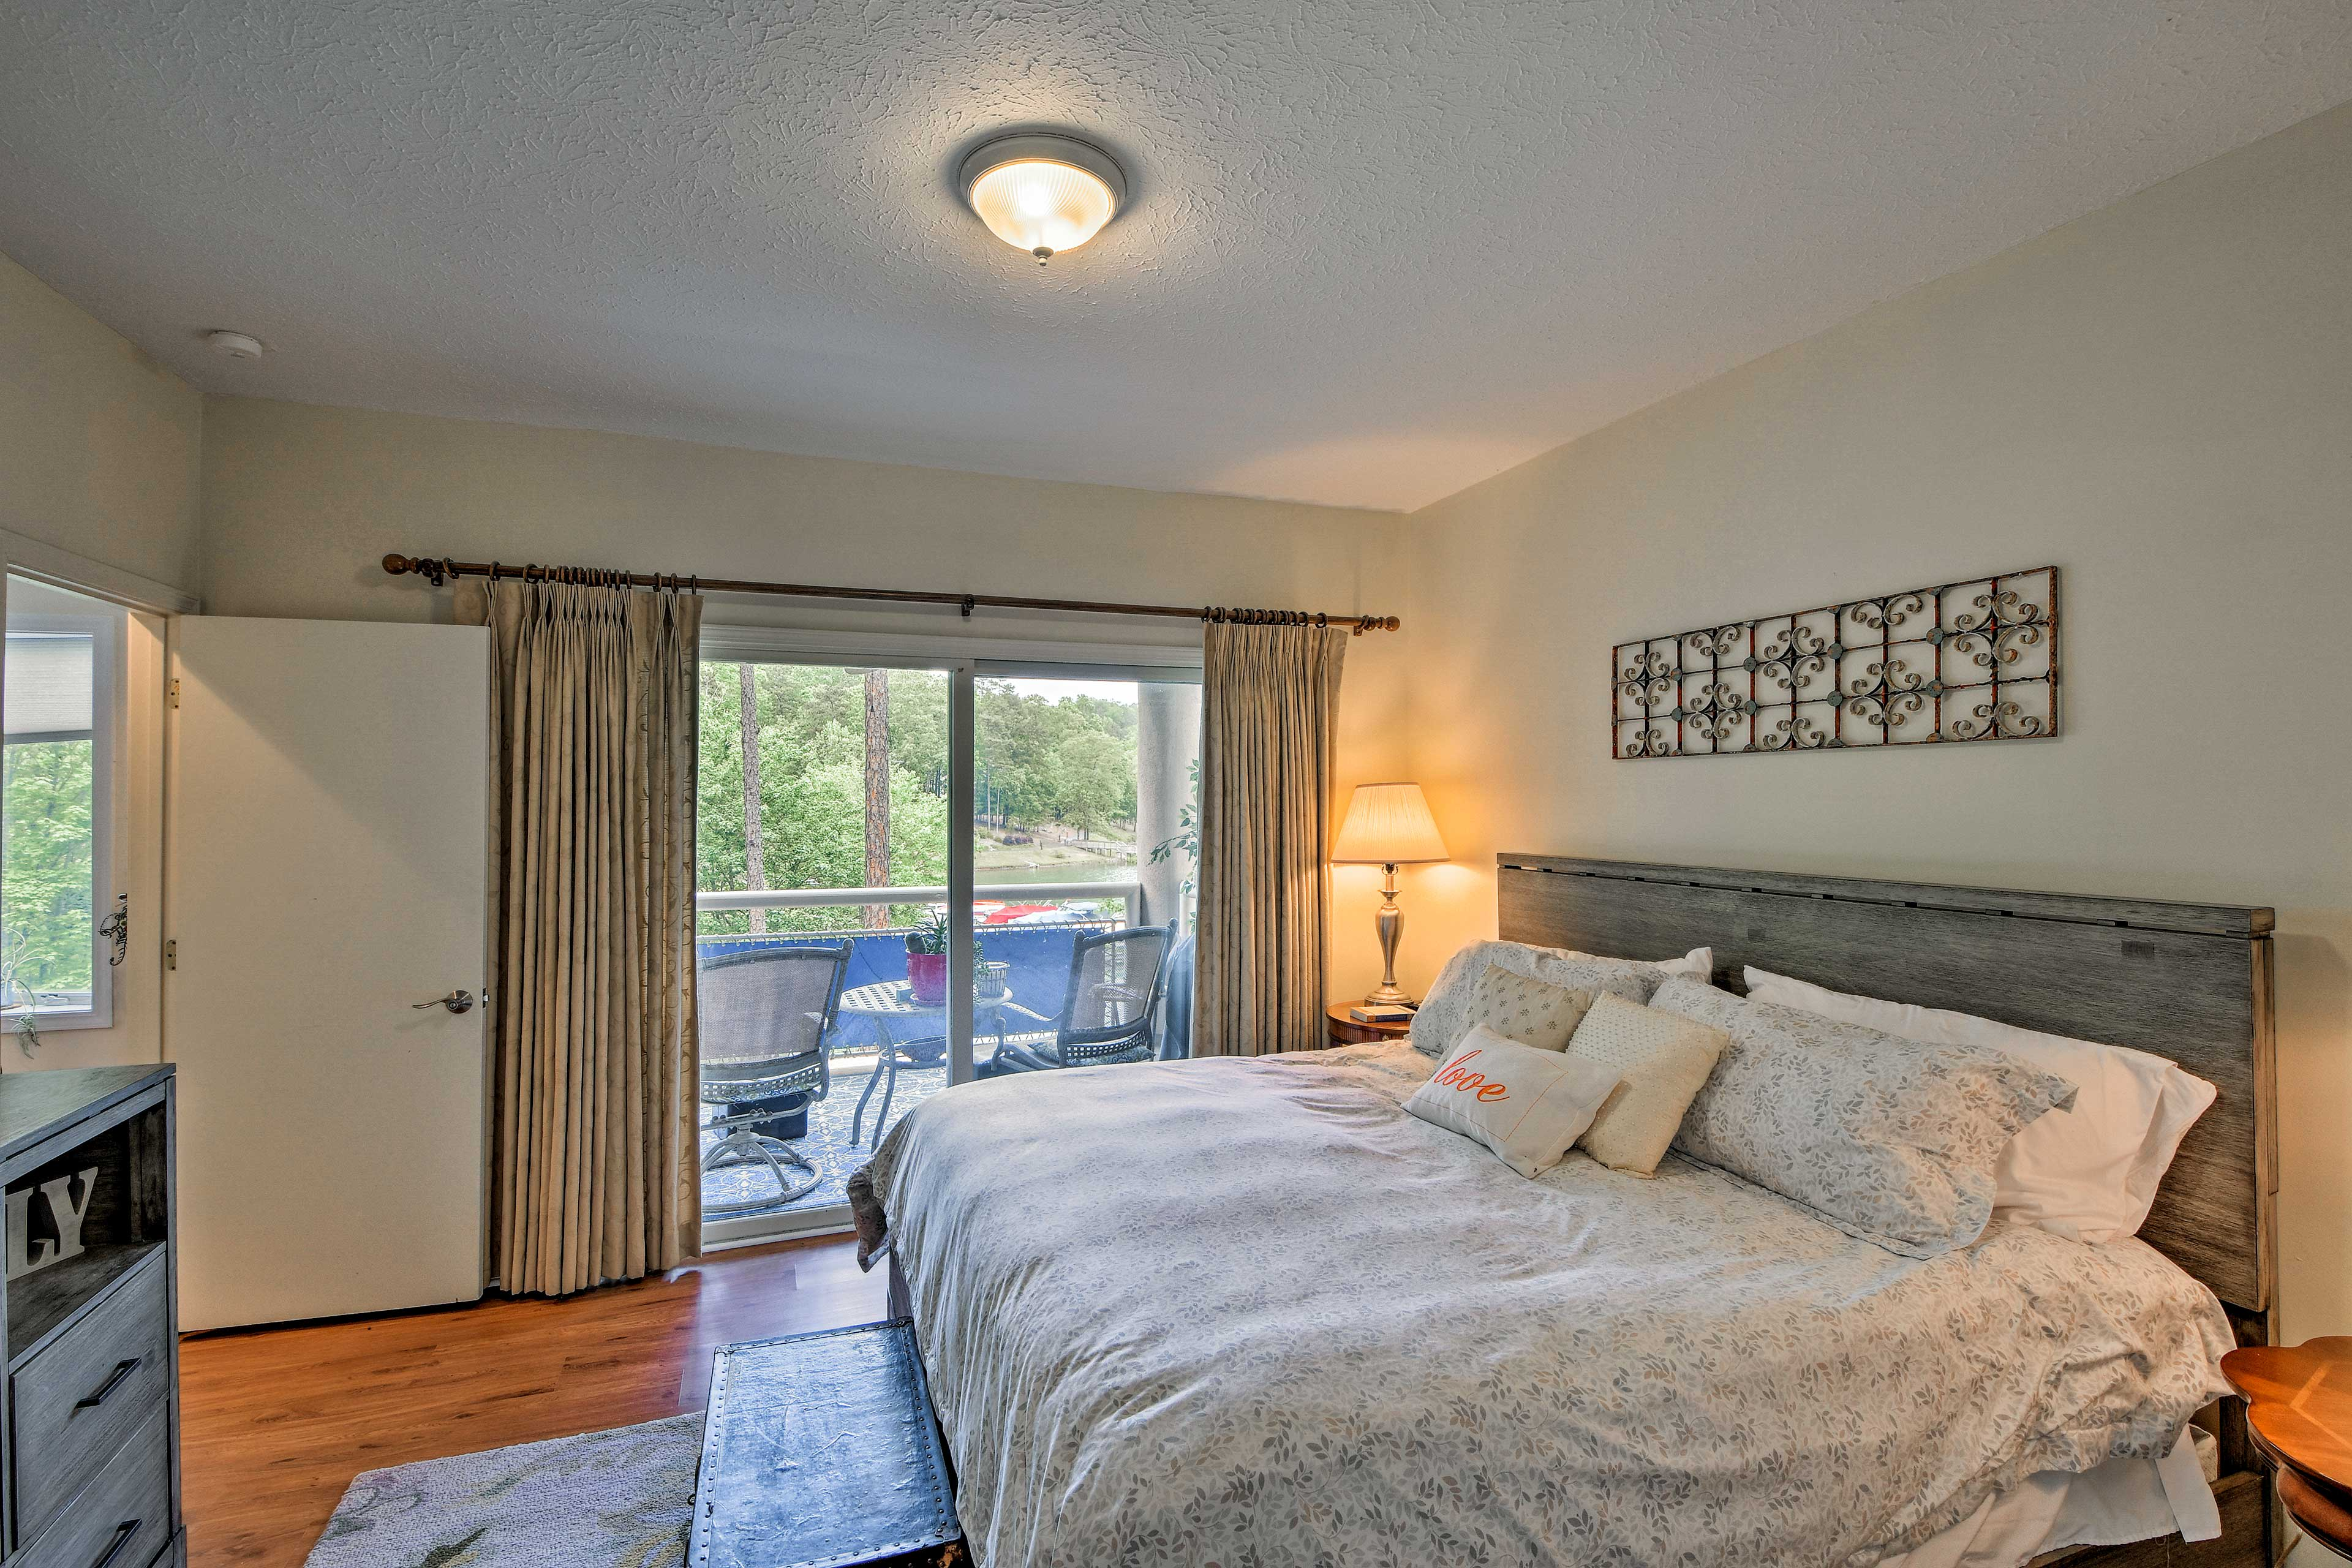 The bedroom boasts access to the furnished balcony.